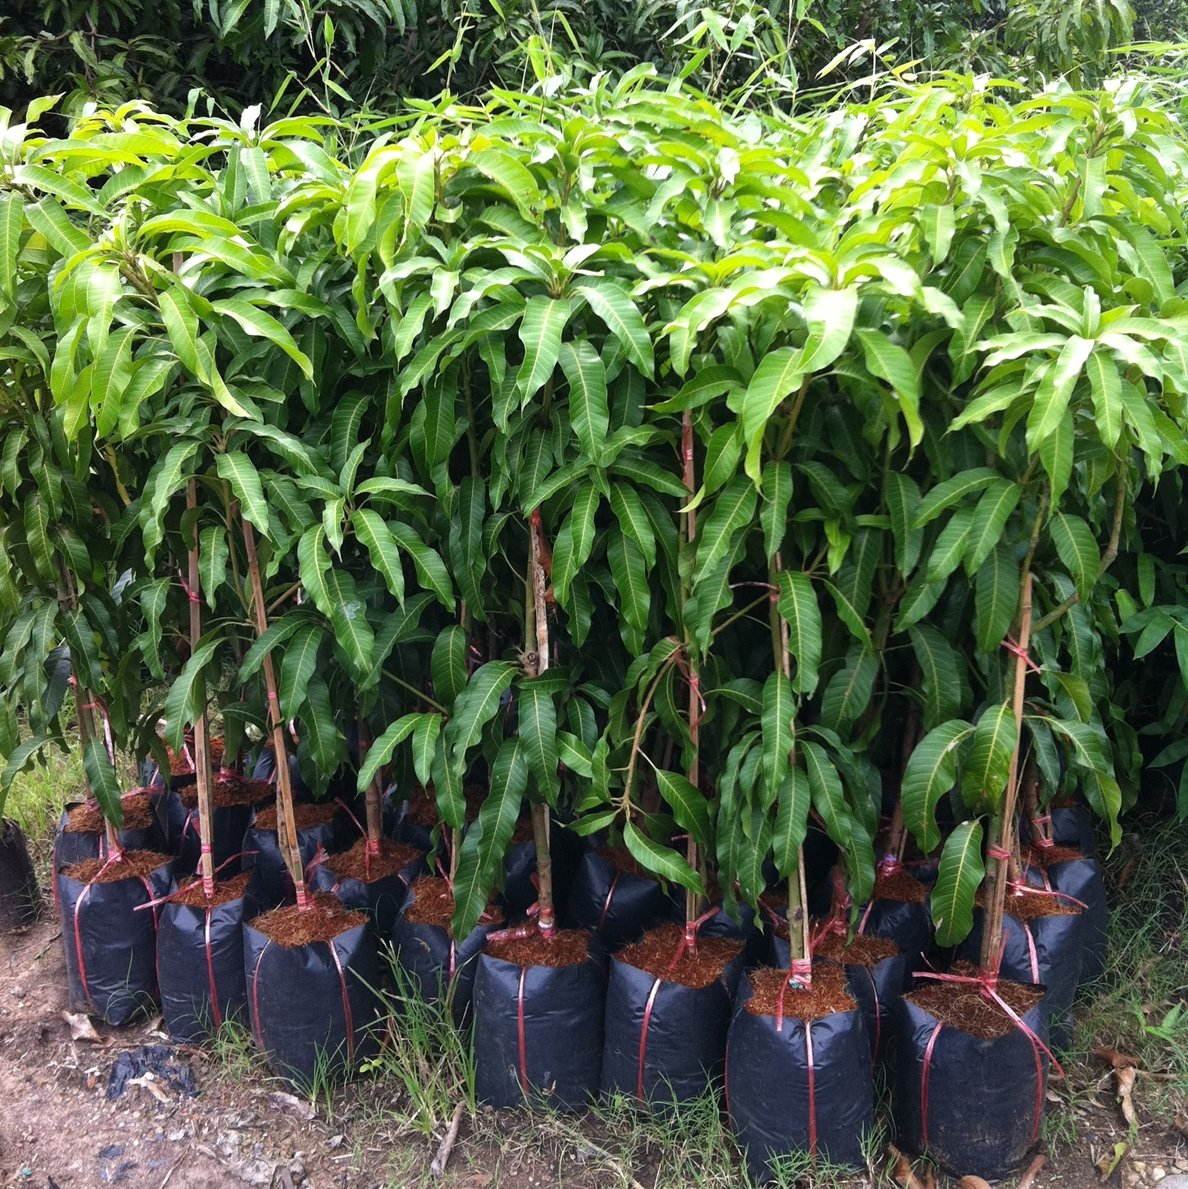 1 GRAFTED Mango Tree plant Nam-Dok-Mai Si Thong 18'' Tall Thai Golden Mango Fruit Juicy Direct from Thailand Free Phytosanitary Cert. by Nature8 Farm (Image #3)